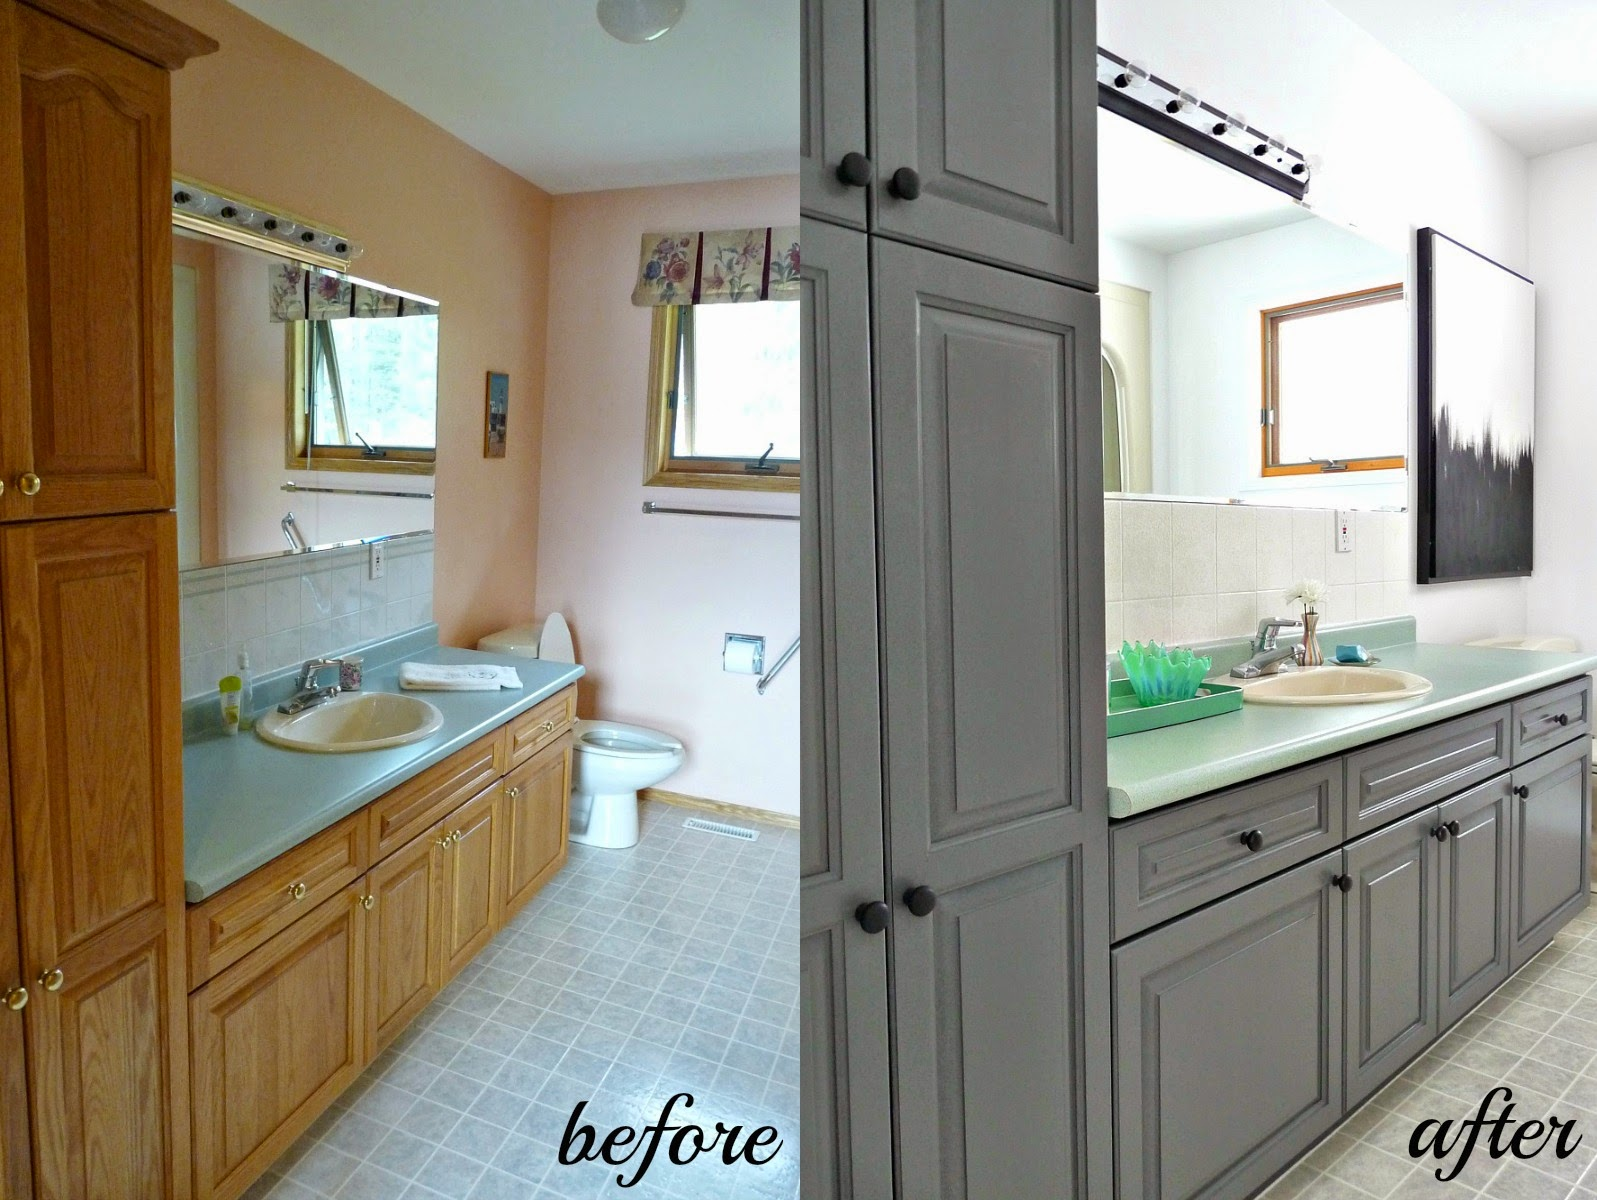 Review of Rustoleum Cabinet Transformations System